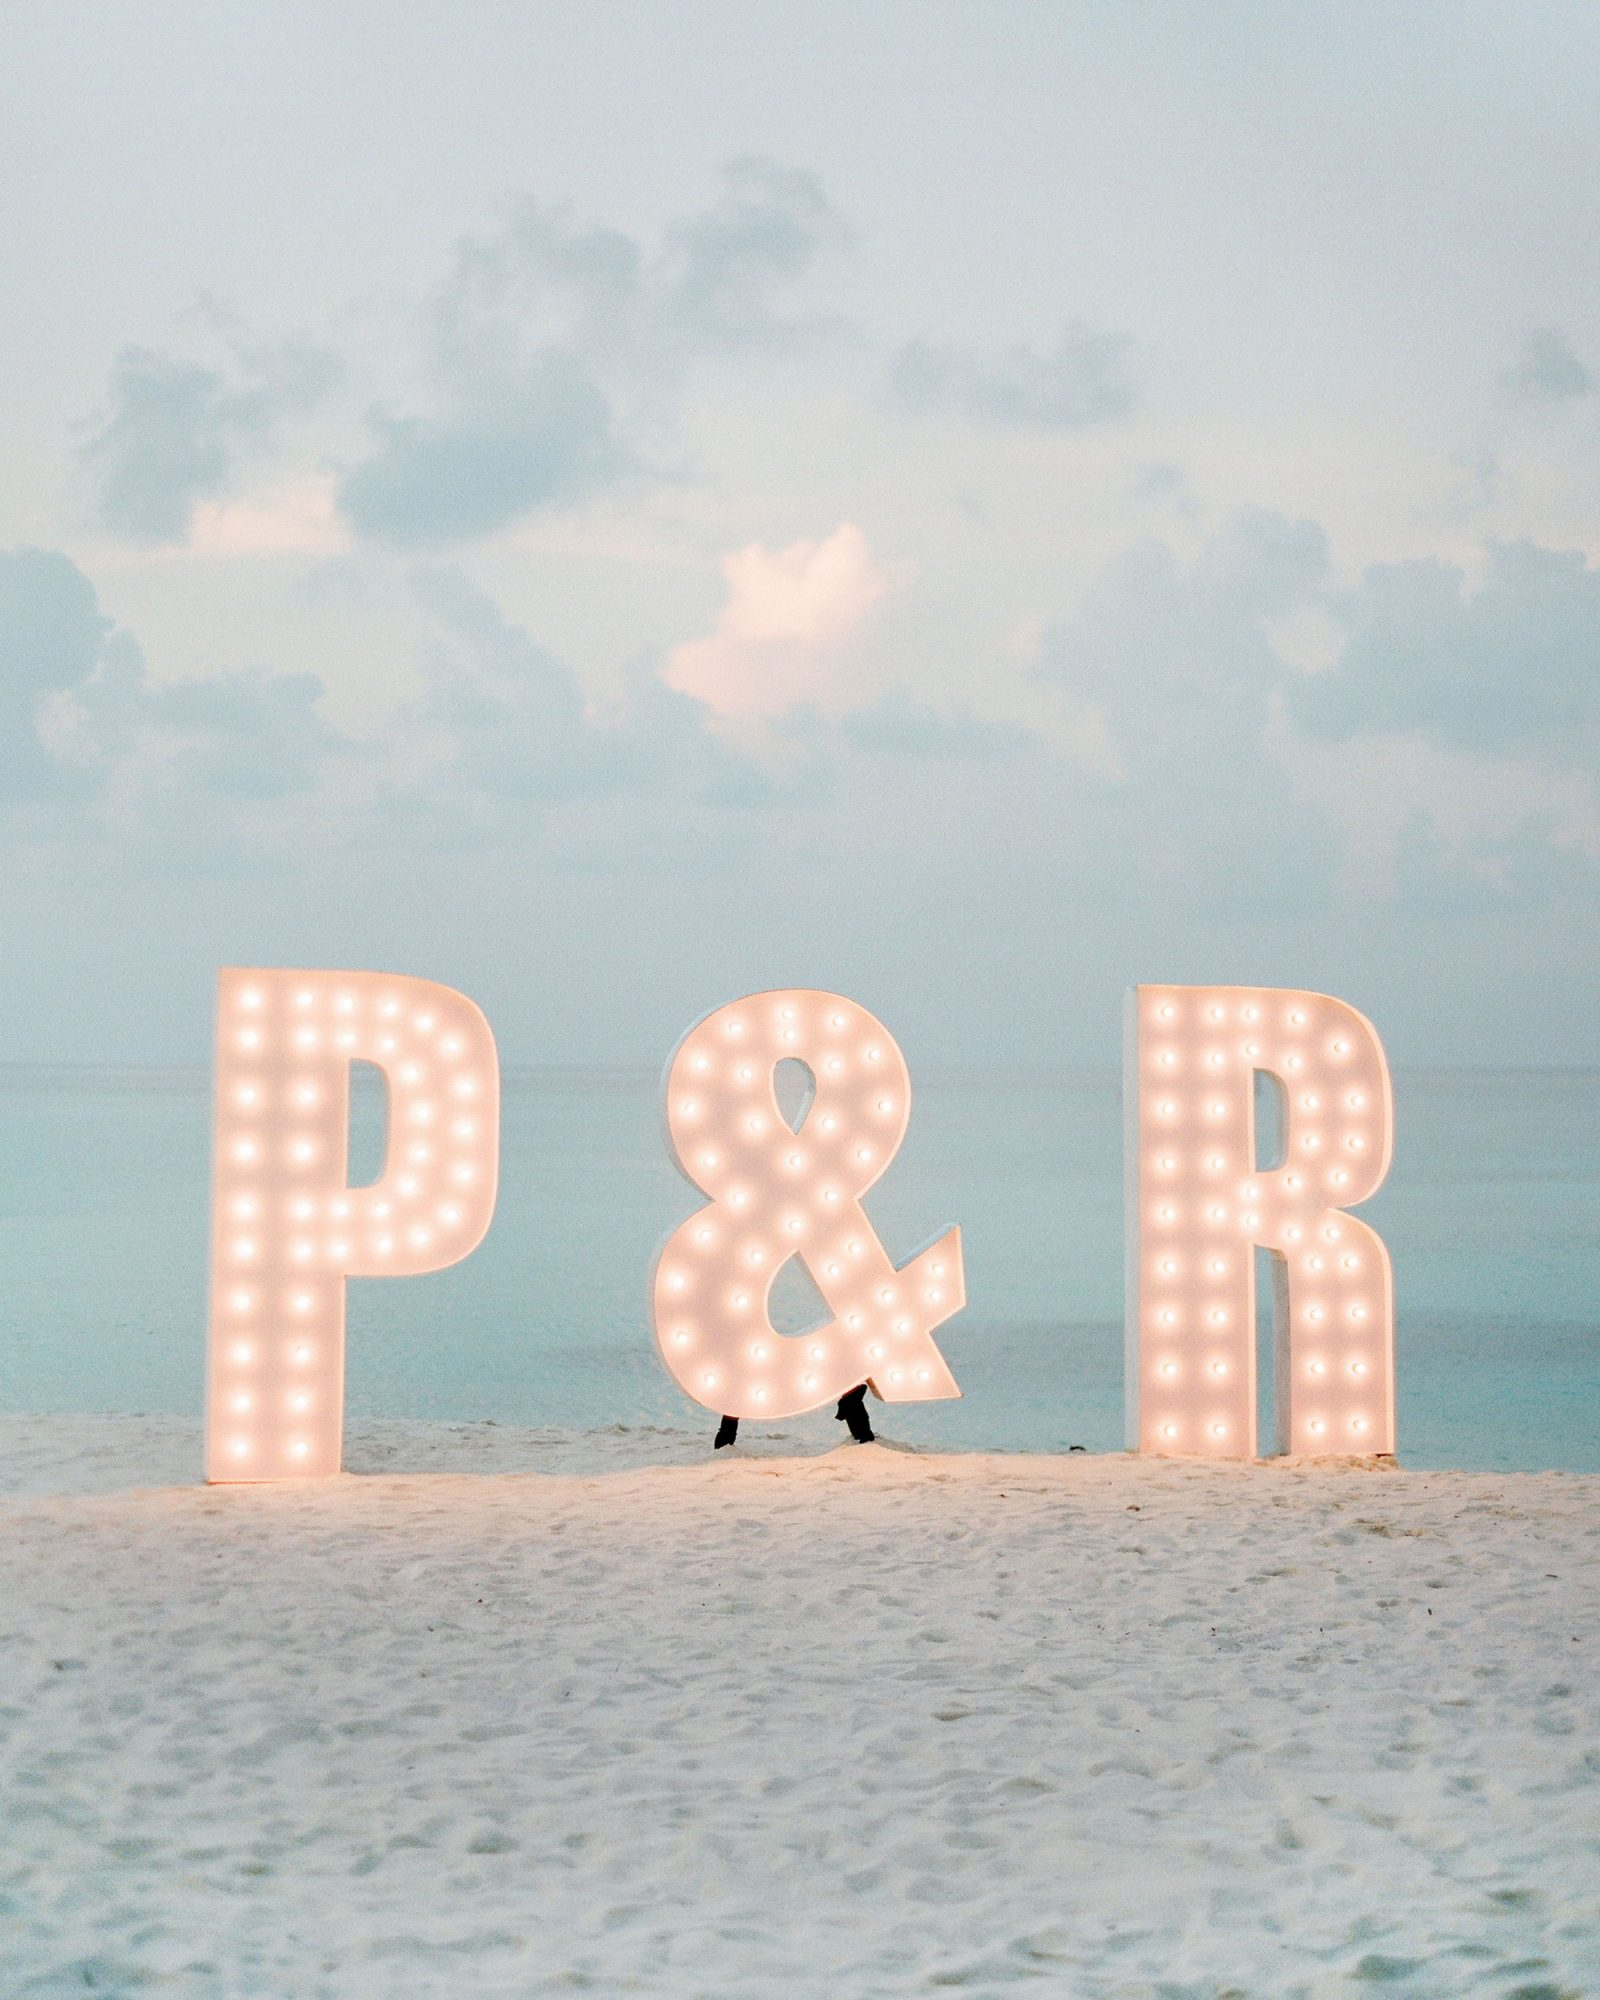 peony-richard-wedding-maldives-light-up-marquee-letters-on-beach-1970-s112383.jpg